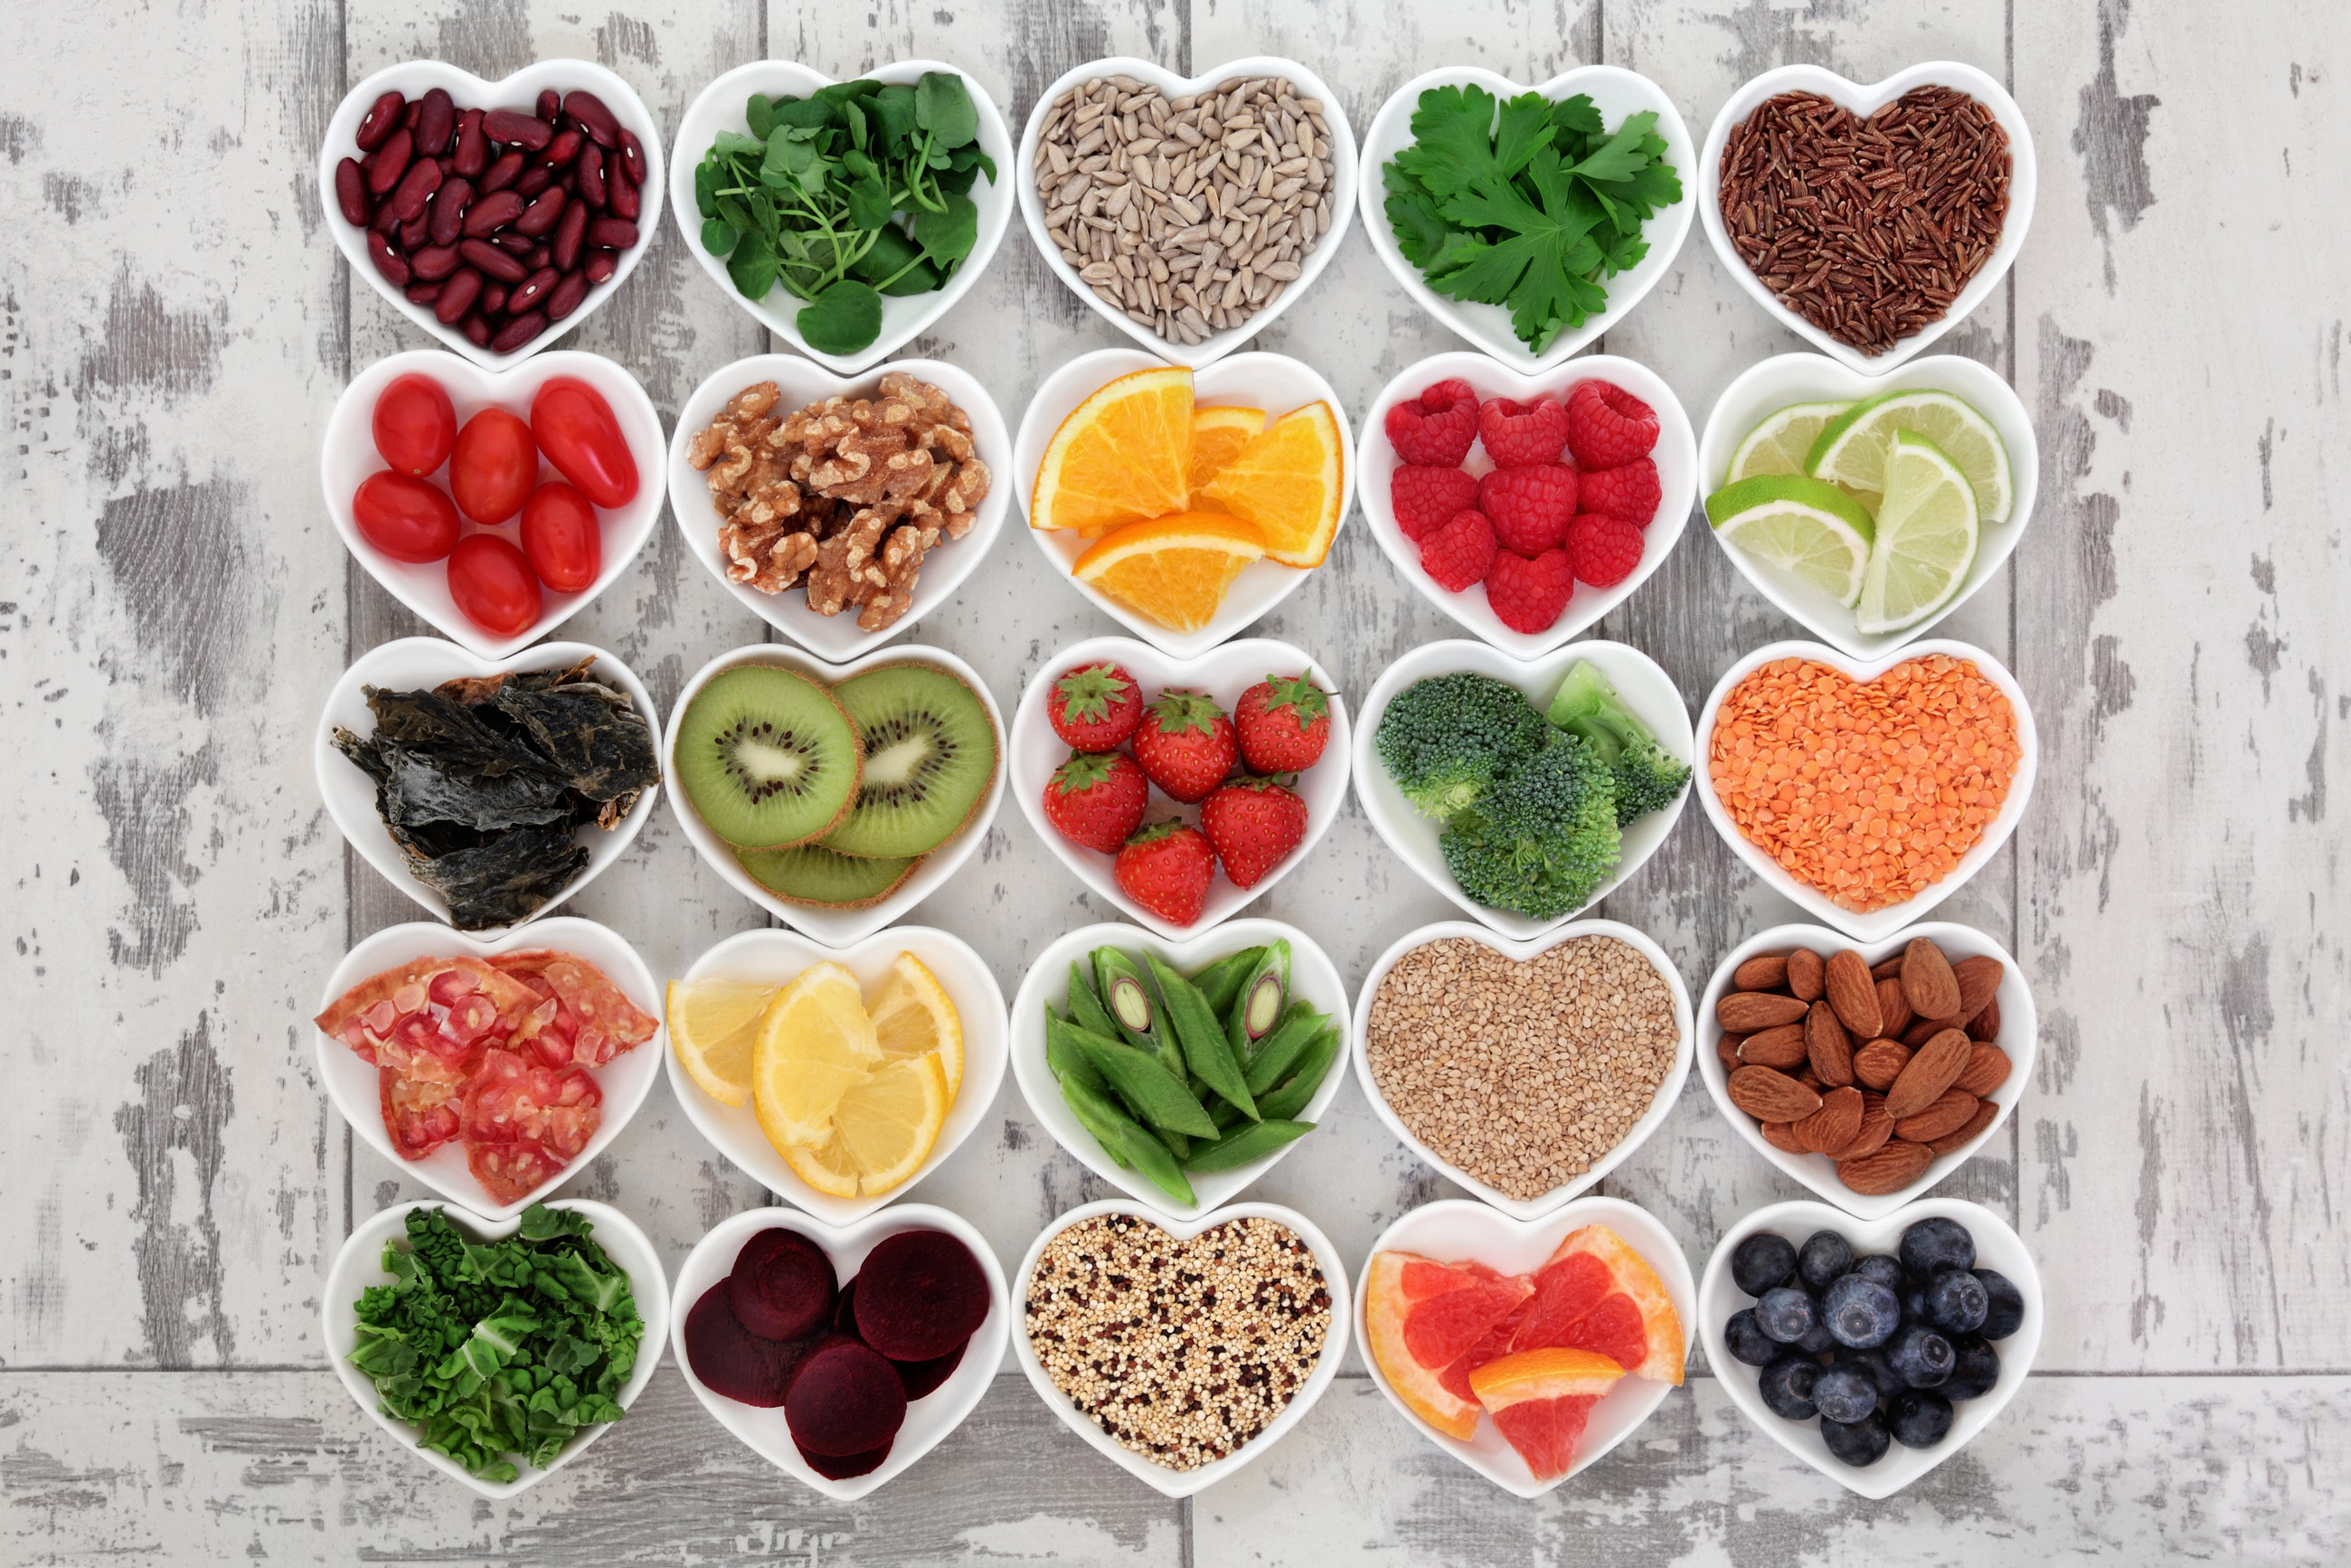 Healthy Tips for McLean, VA's Hearts